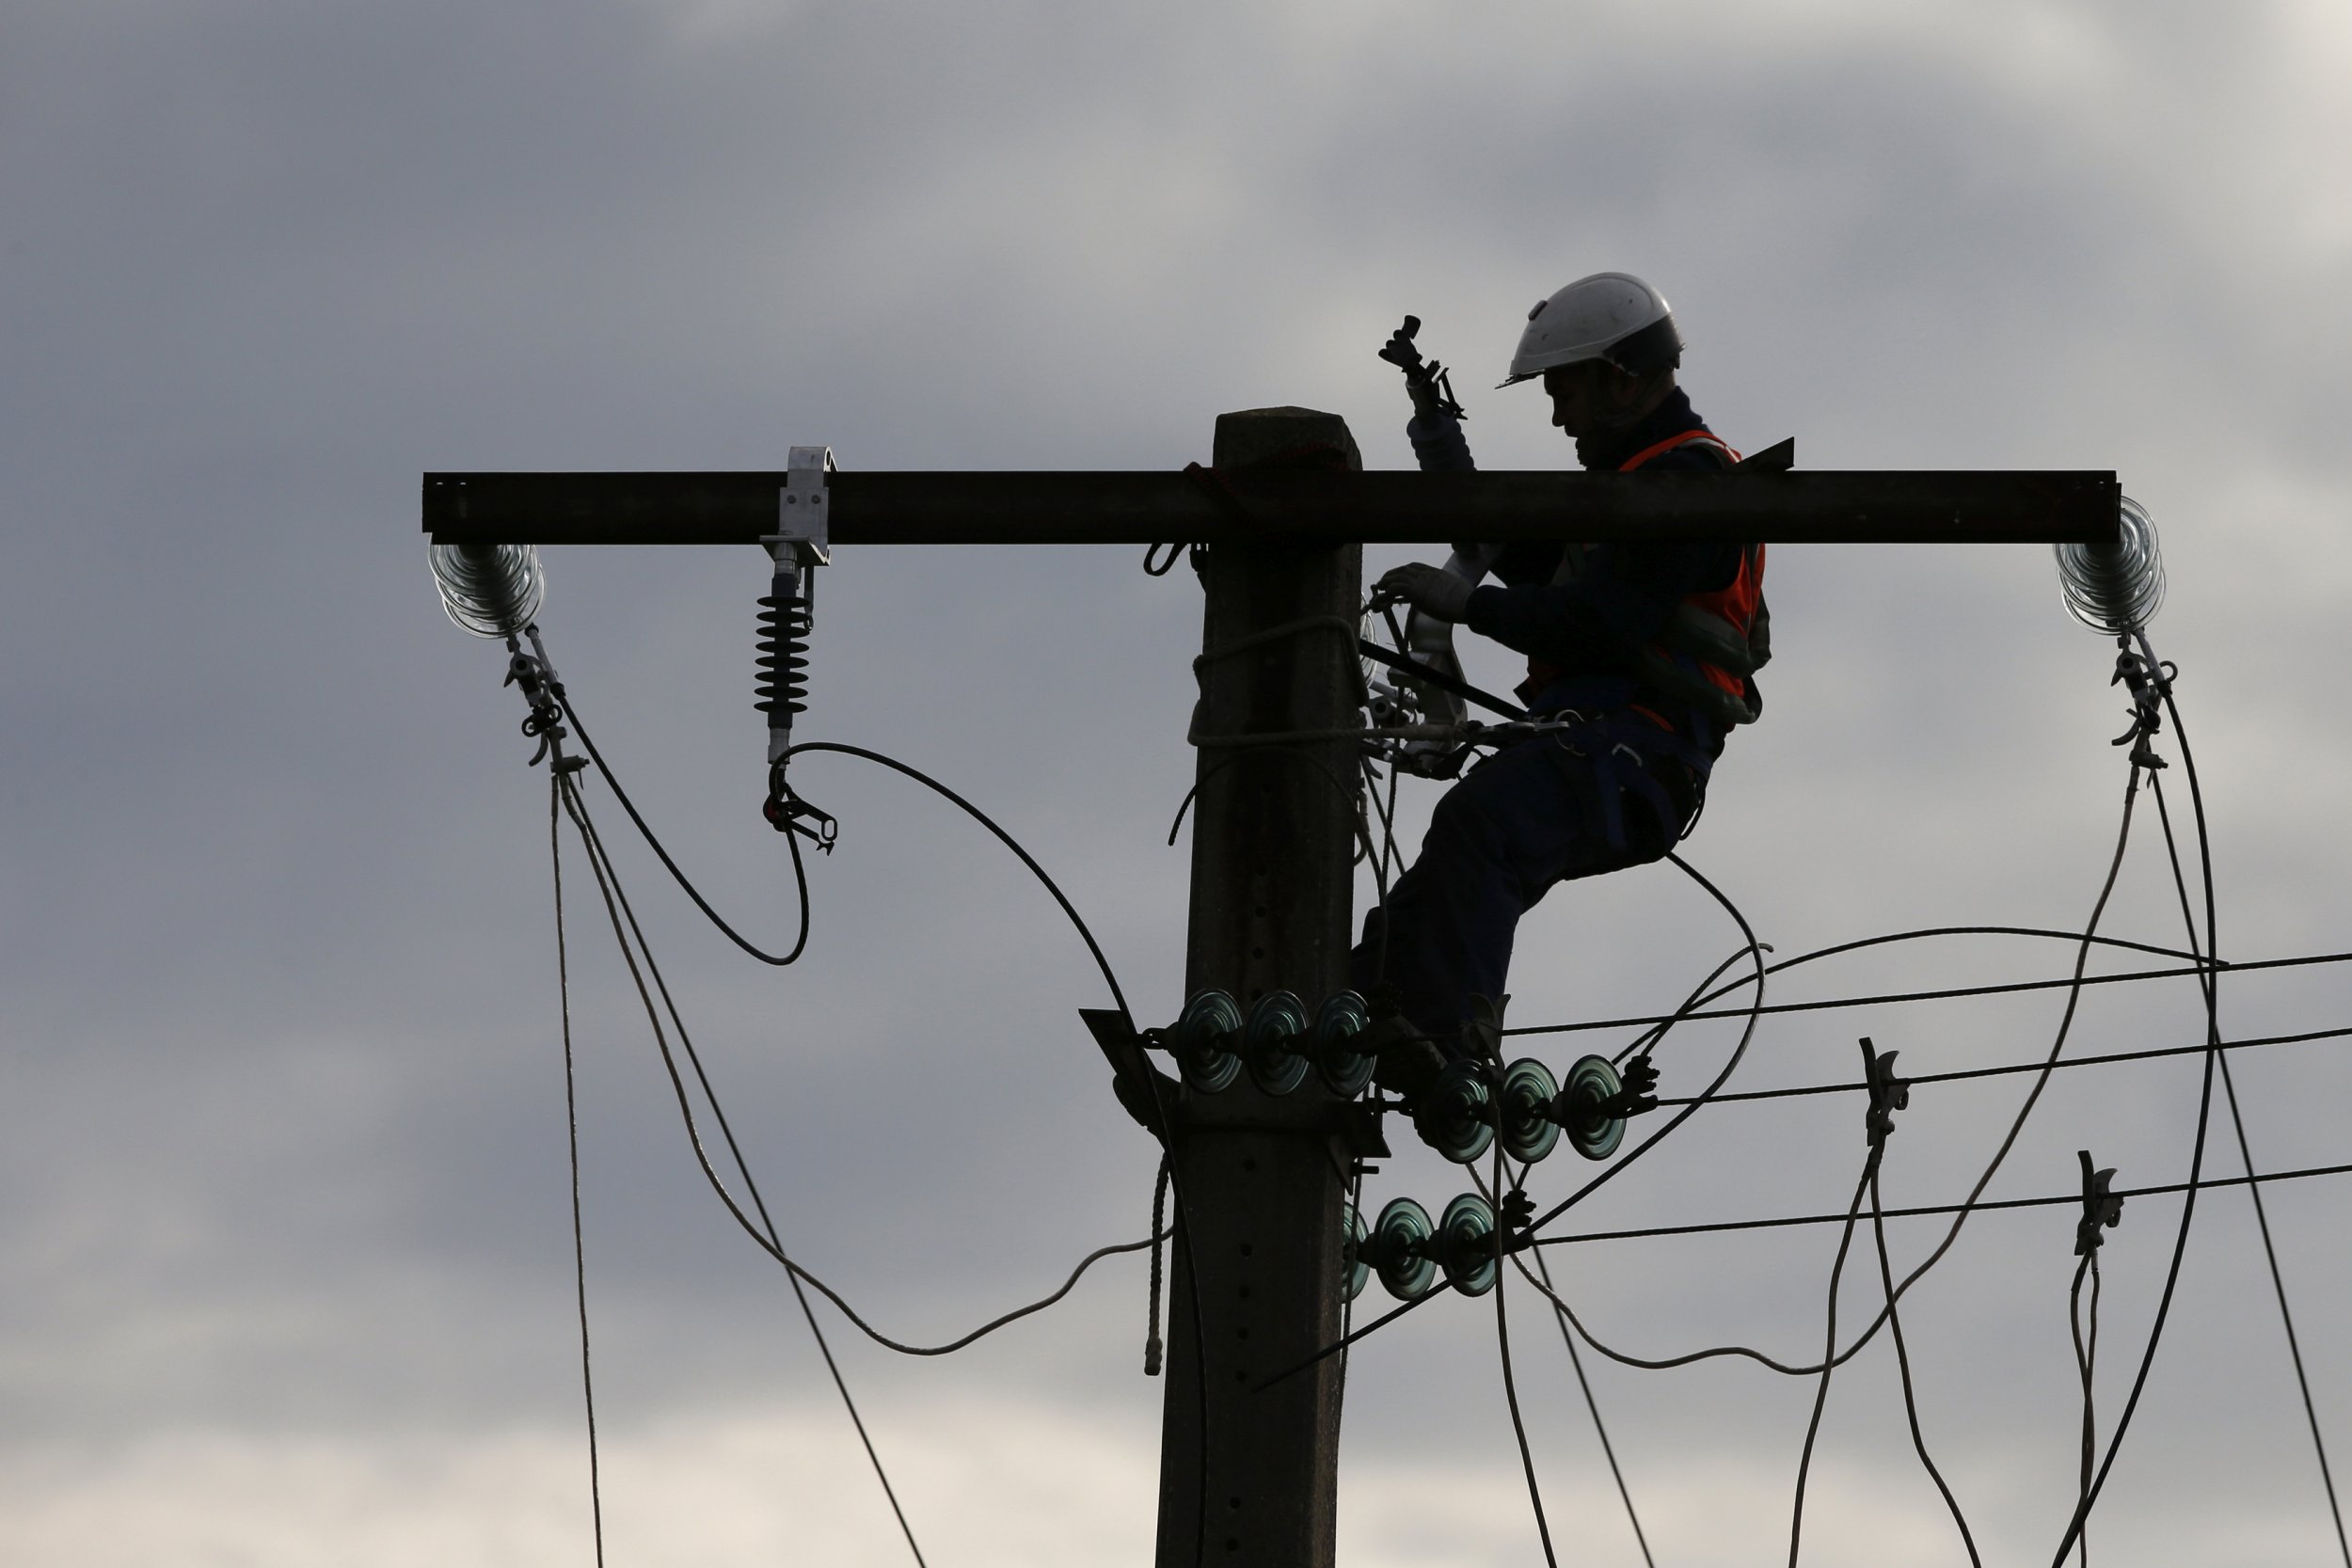 Let's Act Now to Prevent Hacking of the Power Grid